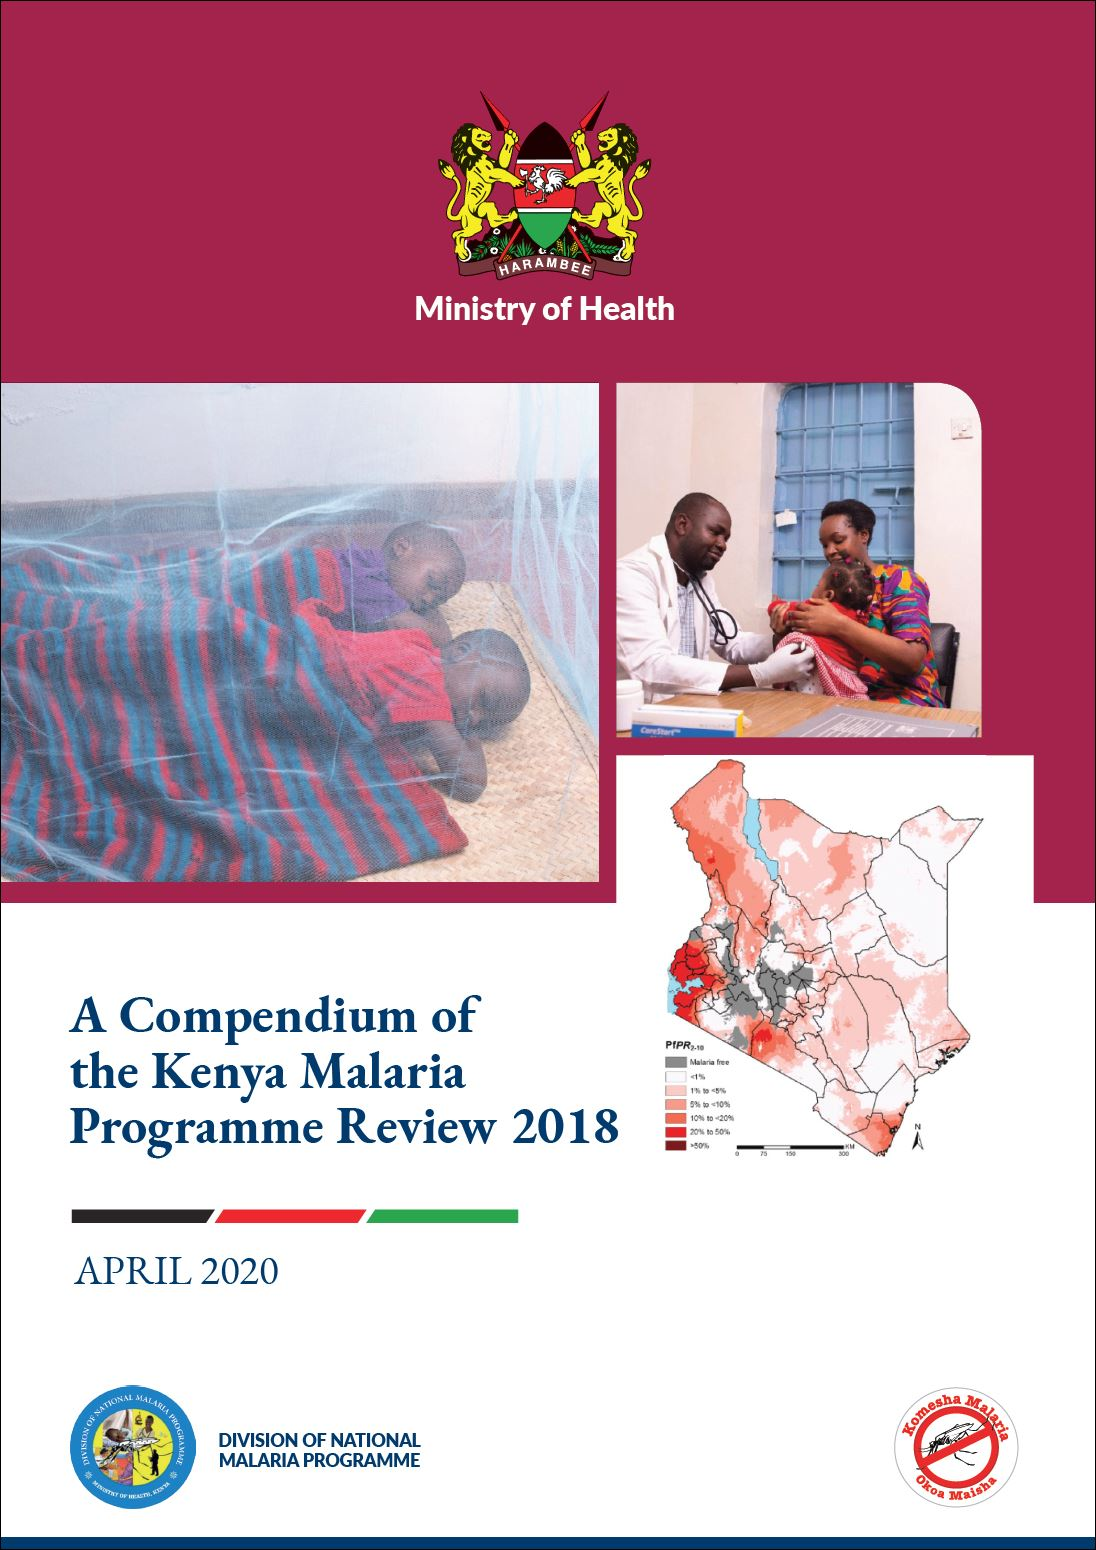 A Compendium of the Kenya Malaria Programme Review 2018